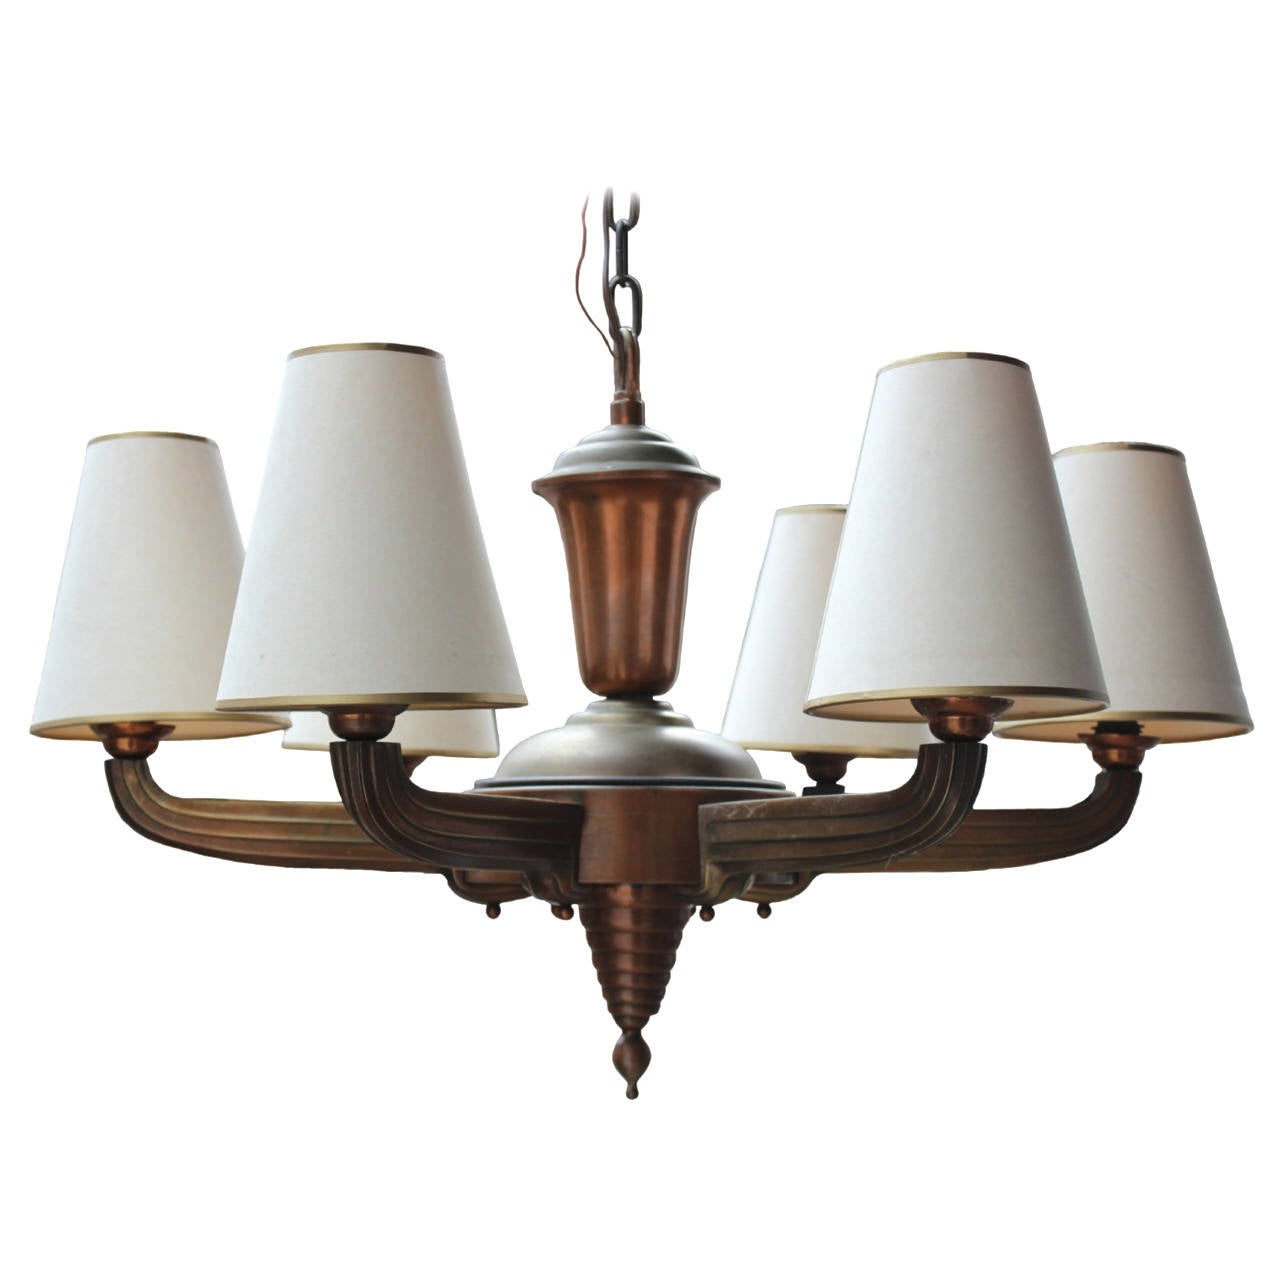 French art deco period bronze chandelier for sale at 1stdibs for Art deco period